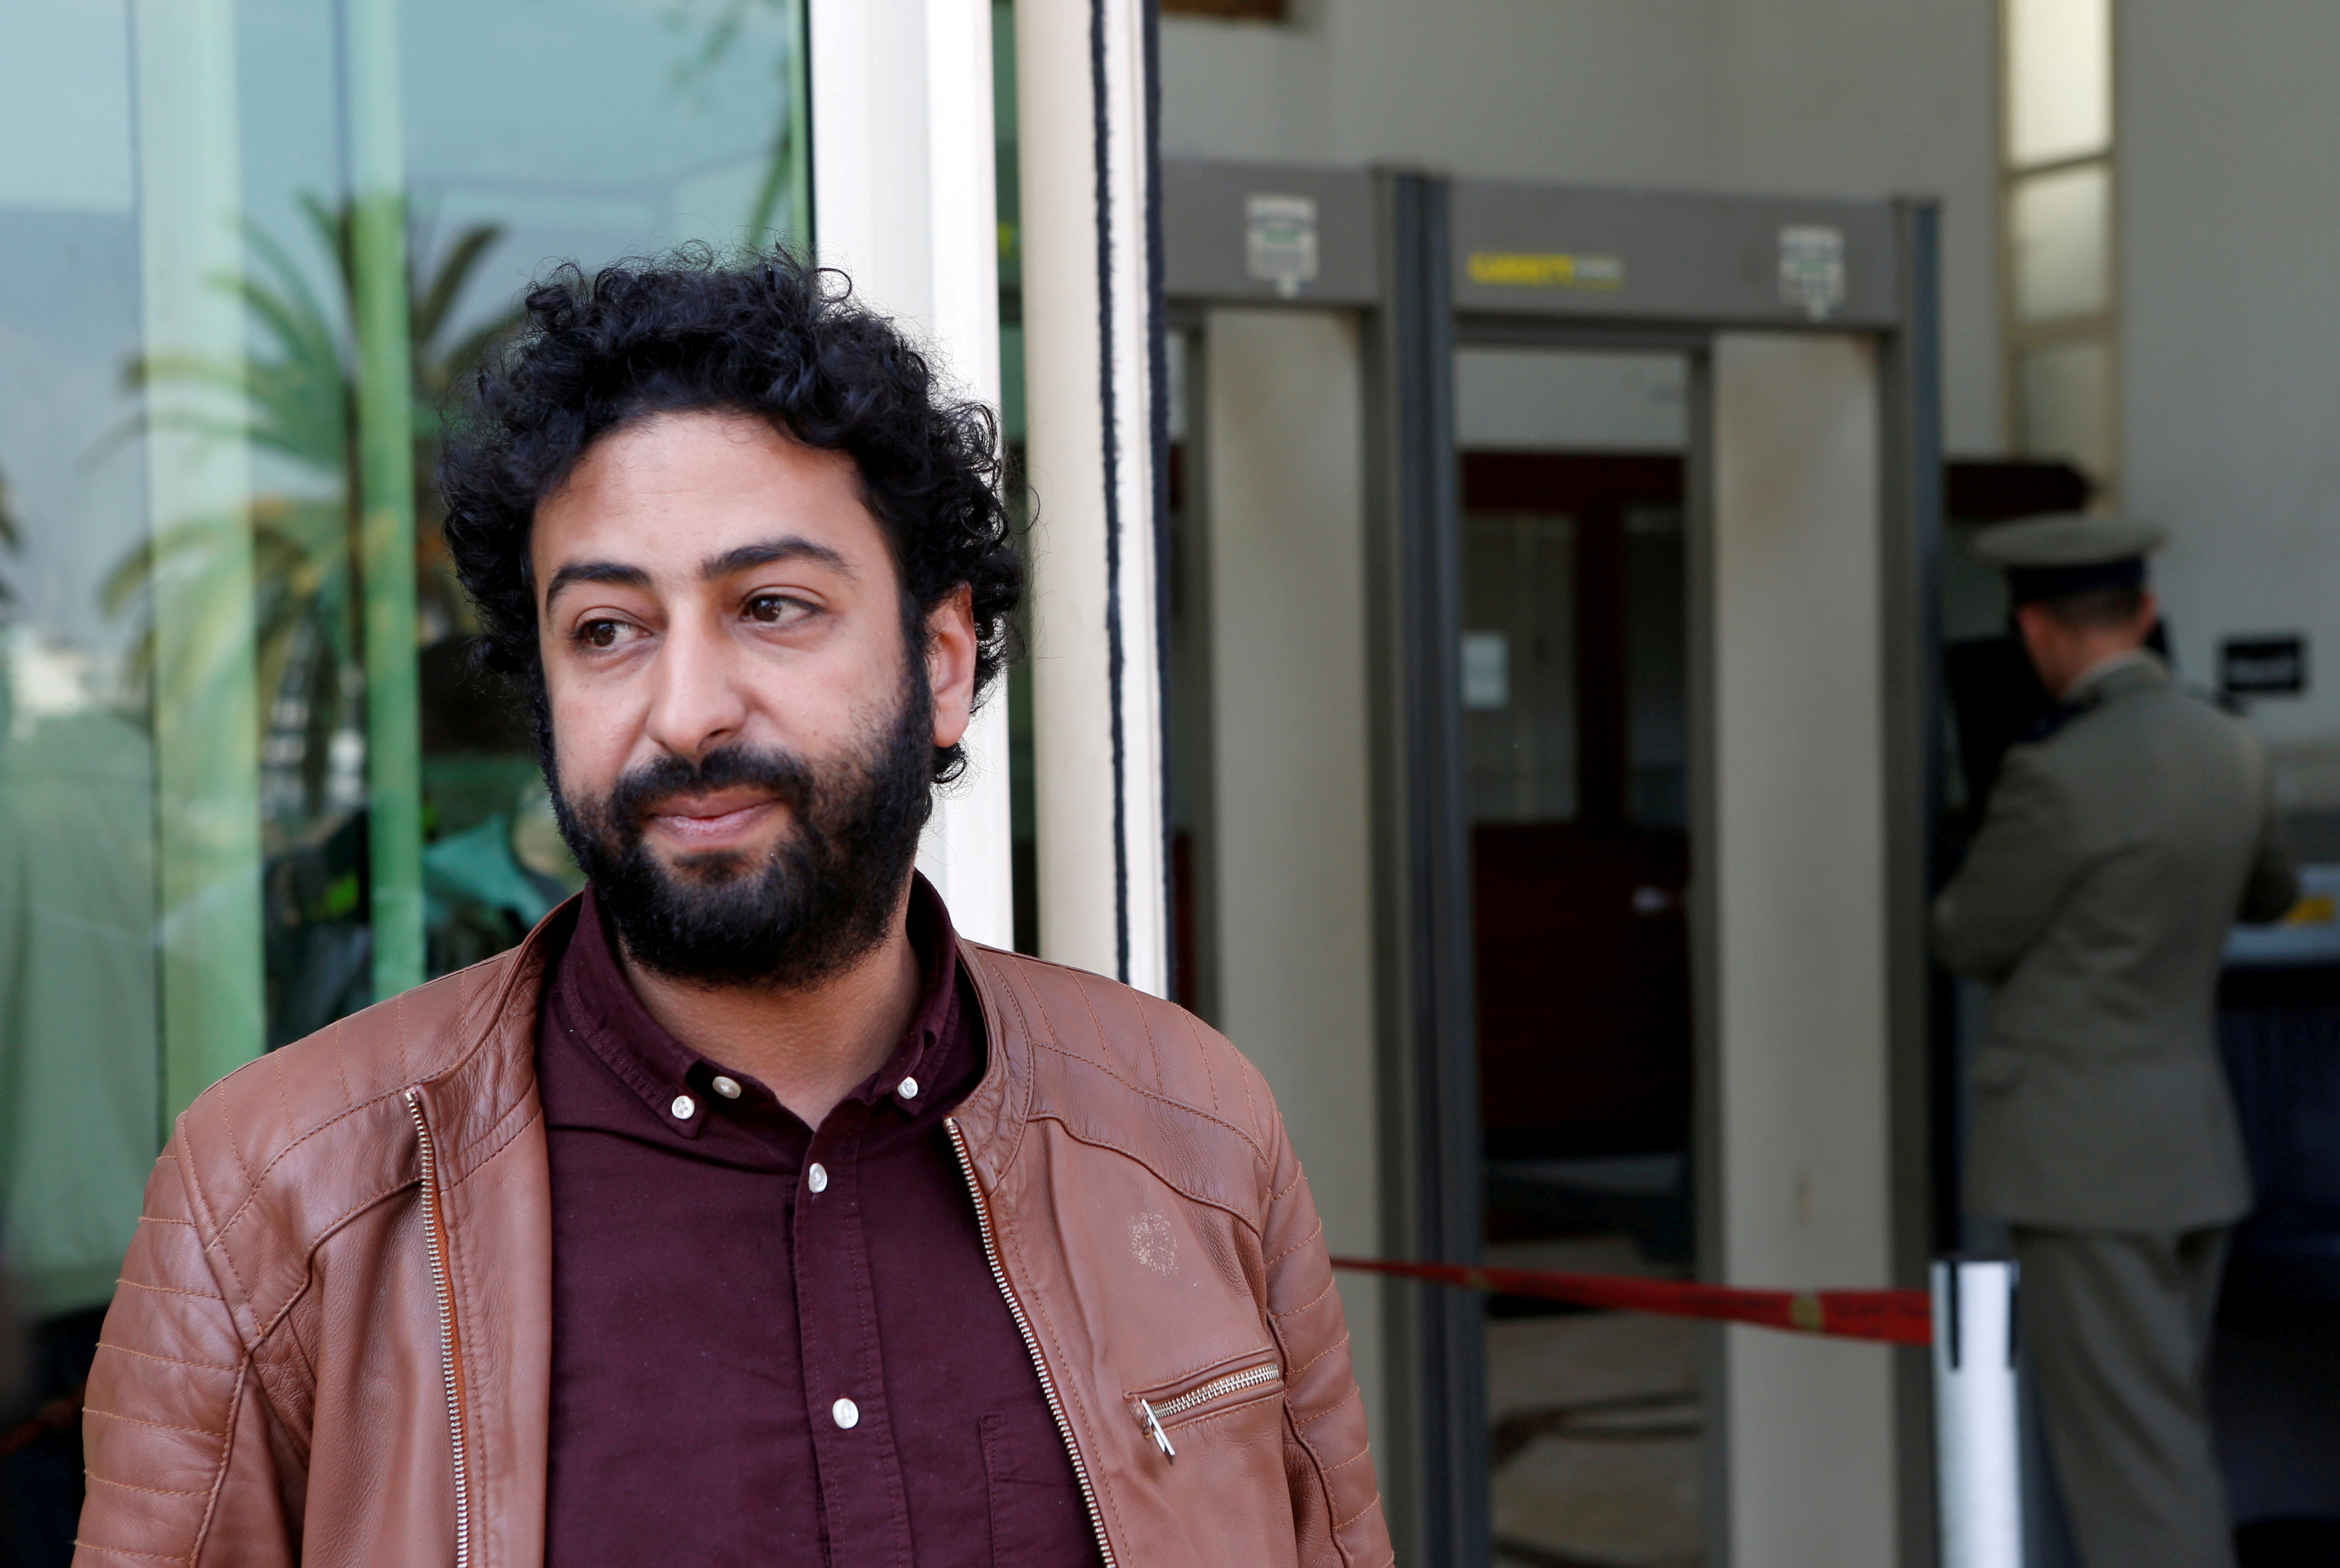 Journalist and activist Omar Radi waits outside court in Casablanca, Morocco March 12, 2020. REUTERS/Youssef Boudlal/File Photo